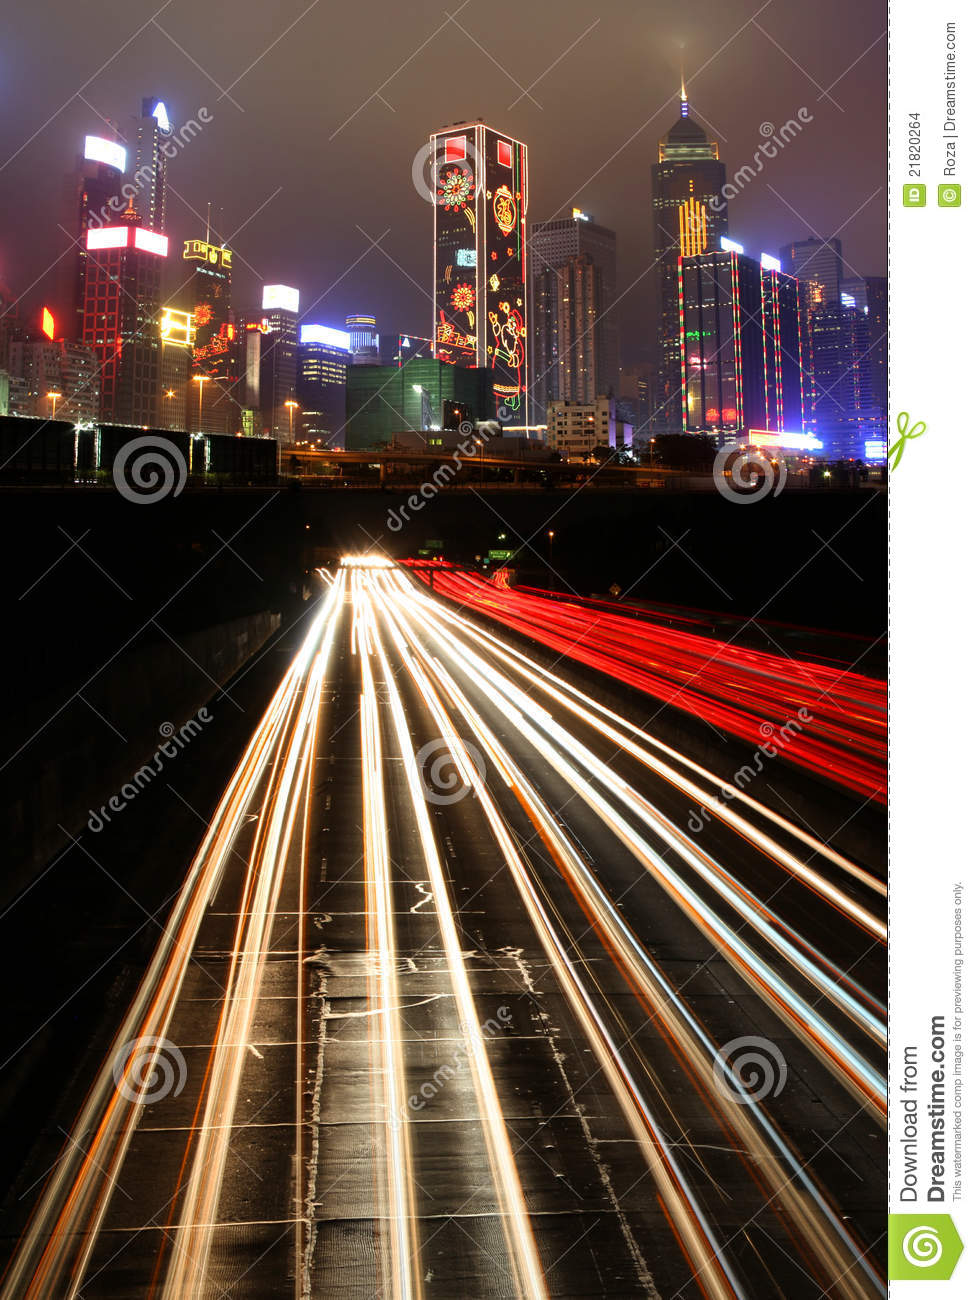 Download Traffic At Night In Urban City Stock Photo - Image of city, architecture: 21820264